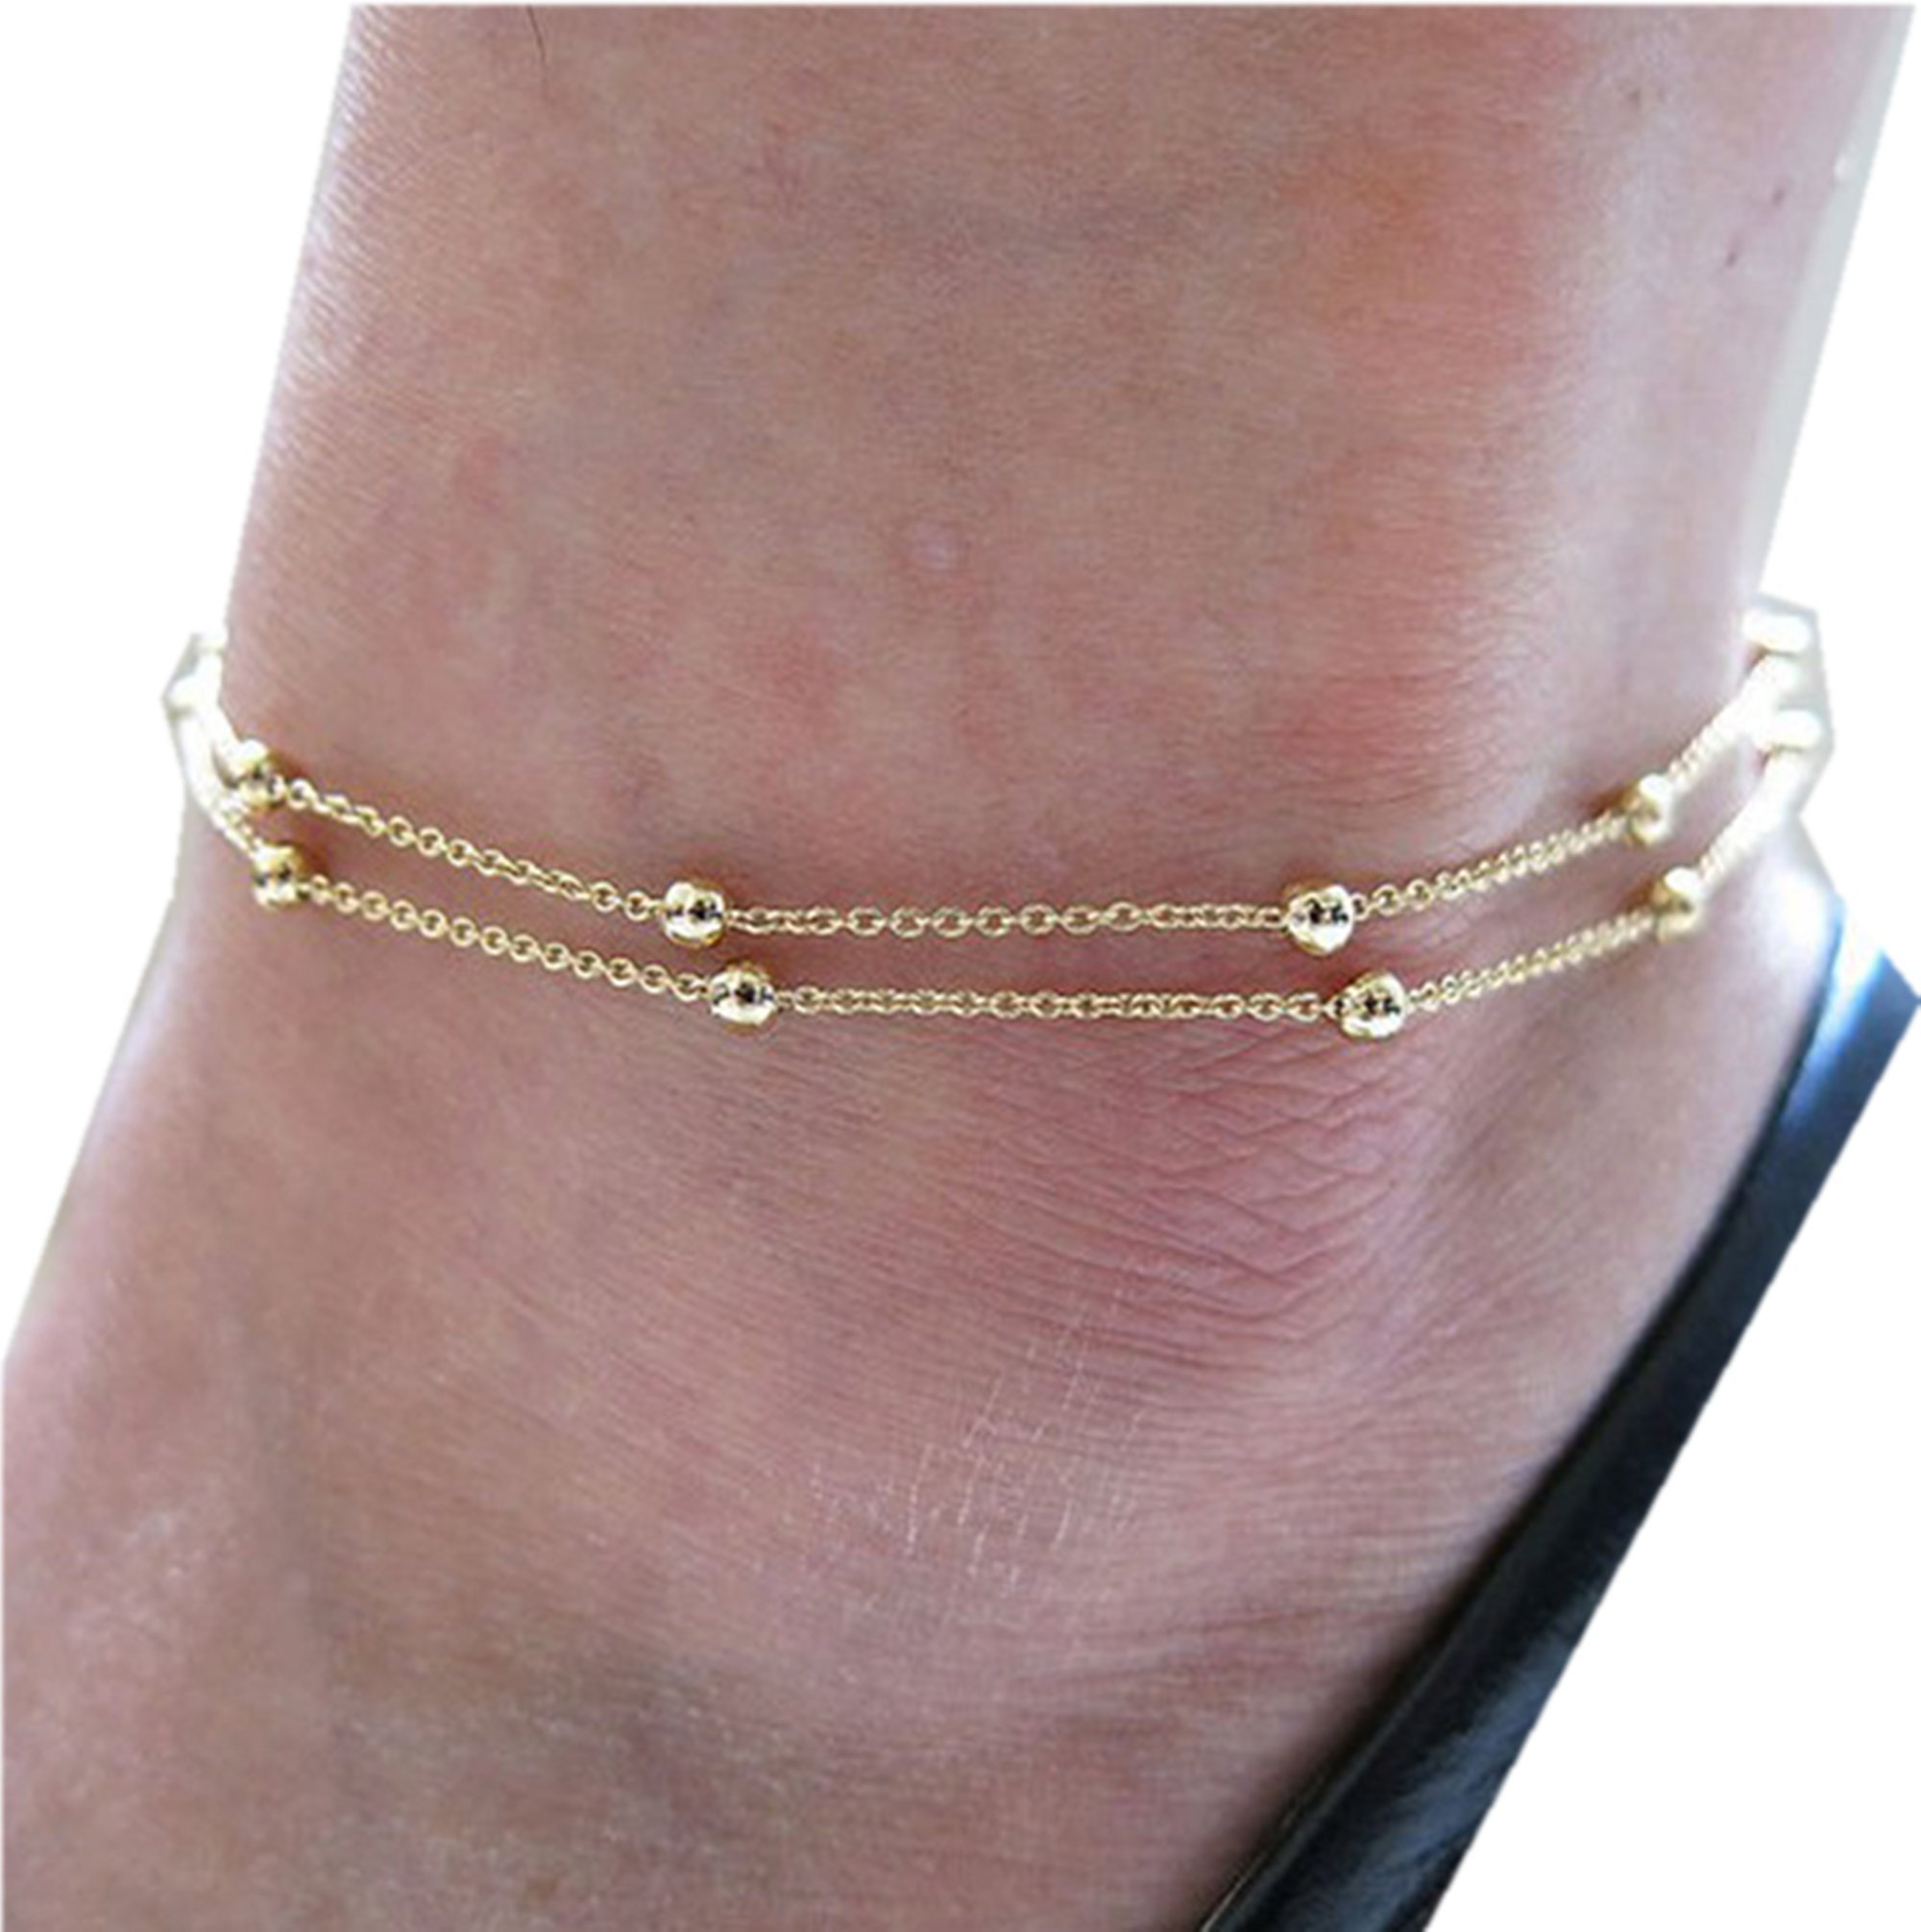 bracelet heart product anklet jewels karat gold double cable chain ankle open